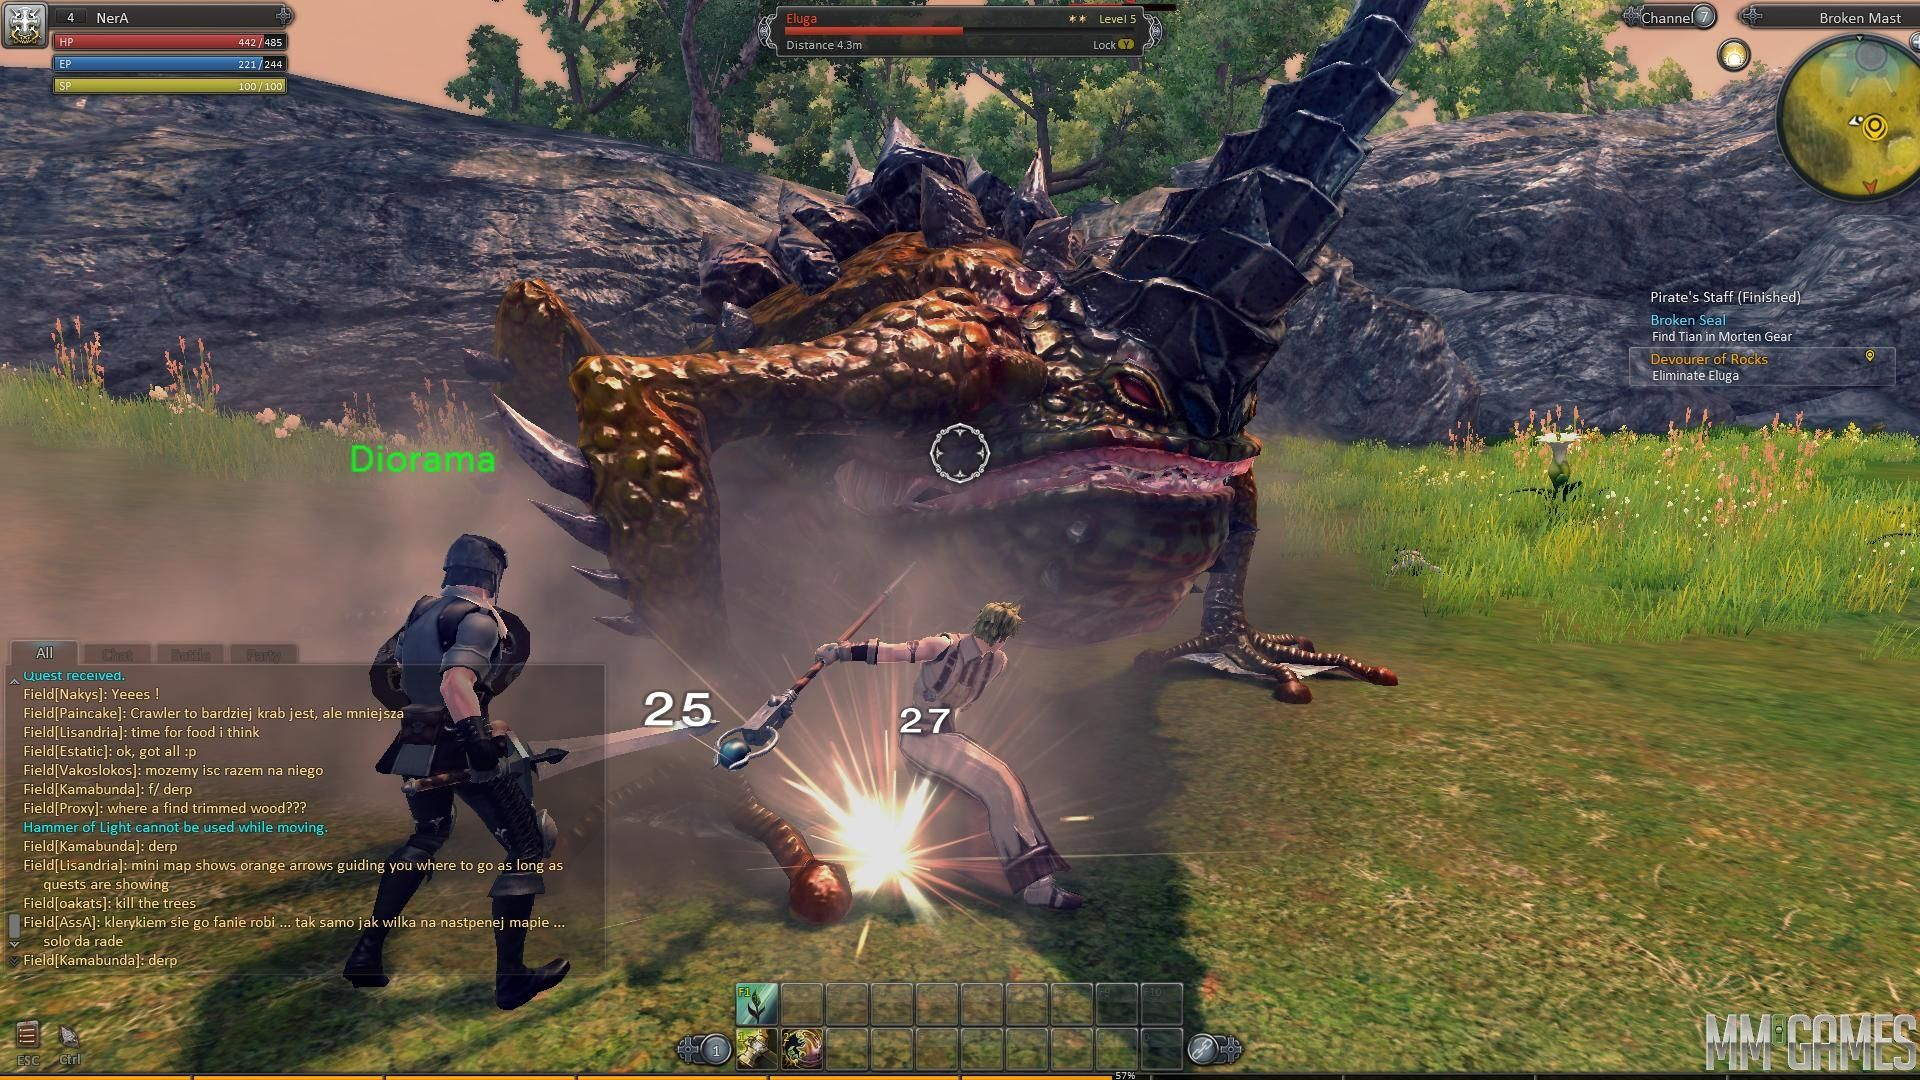 fantasy-action-mmorpg-mmo-games-raiderz-screenshot.jpg